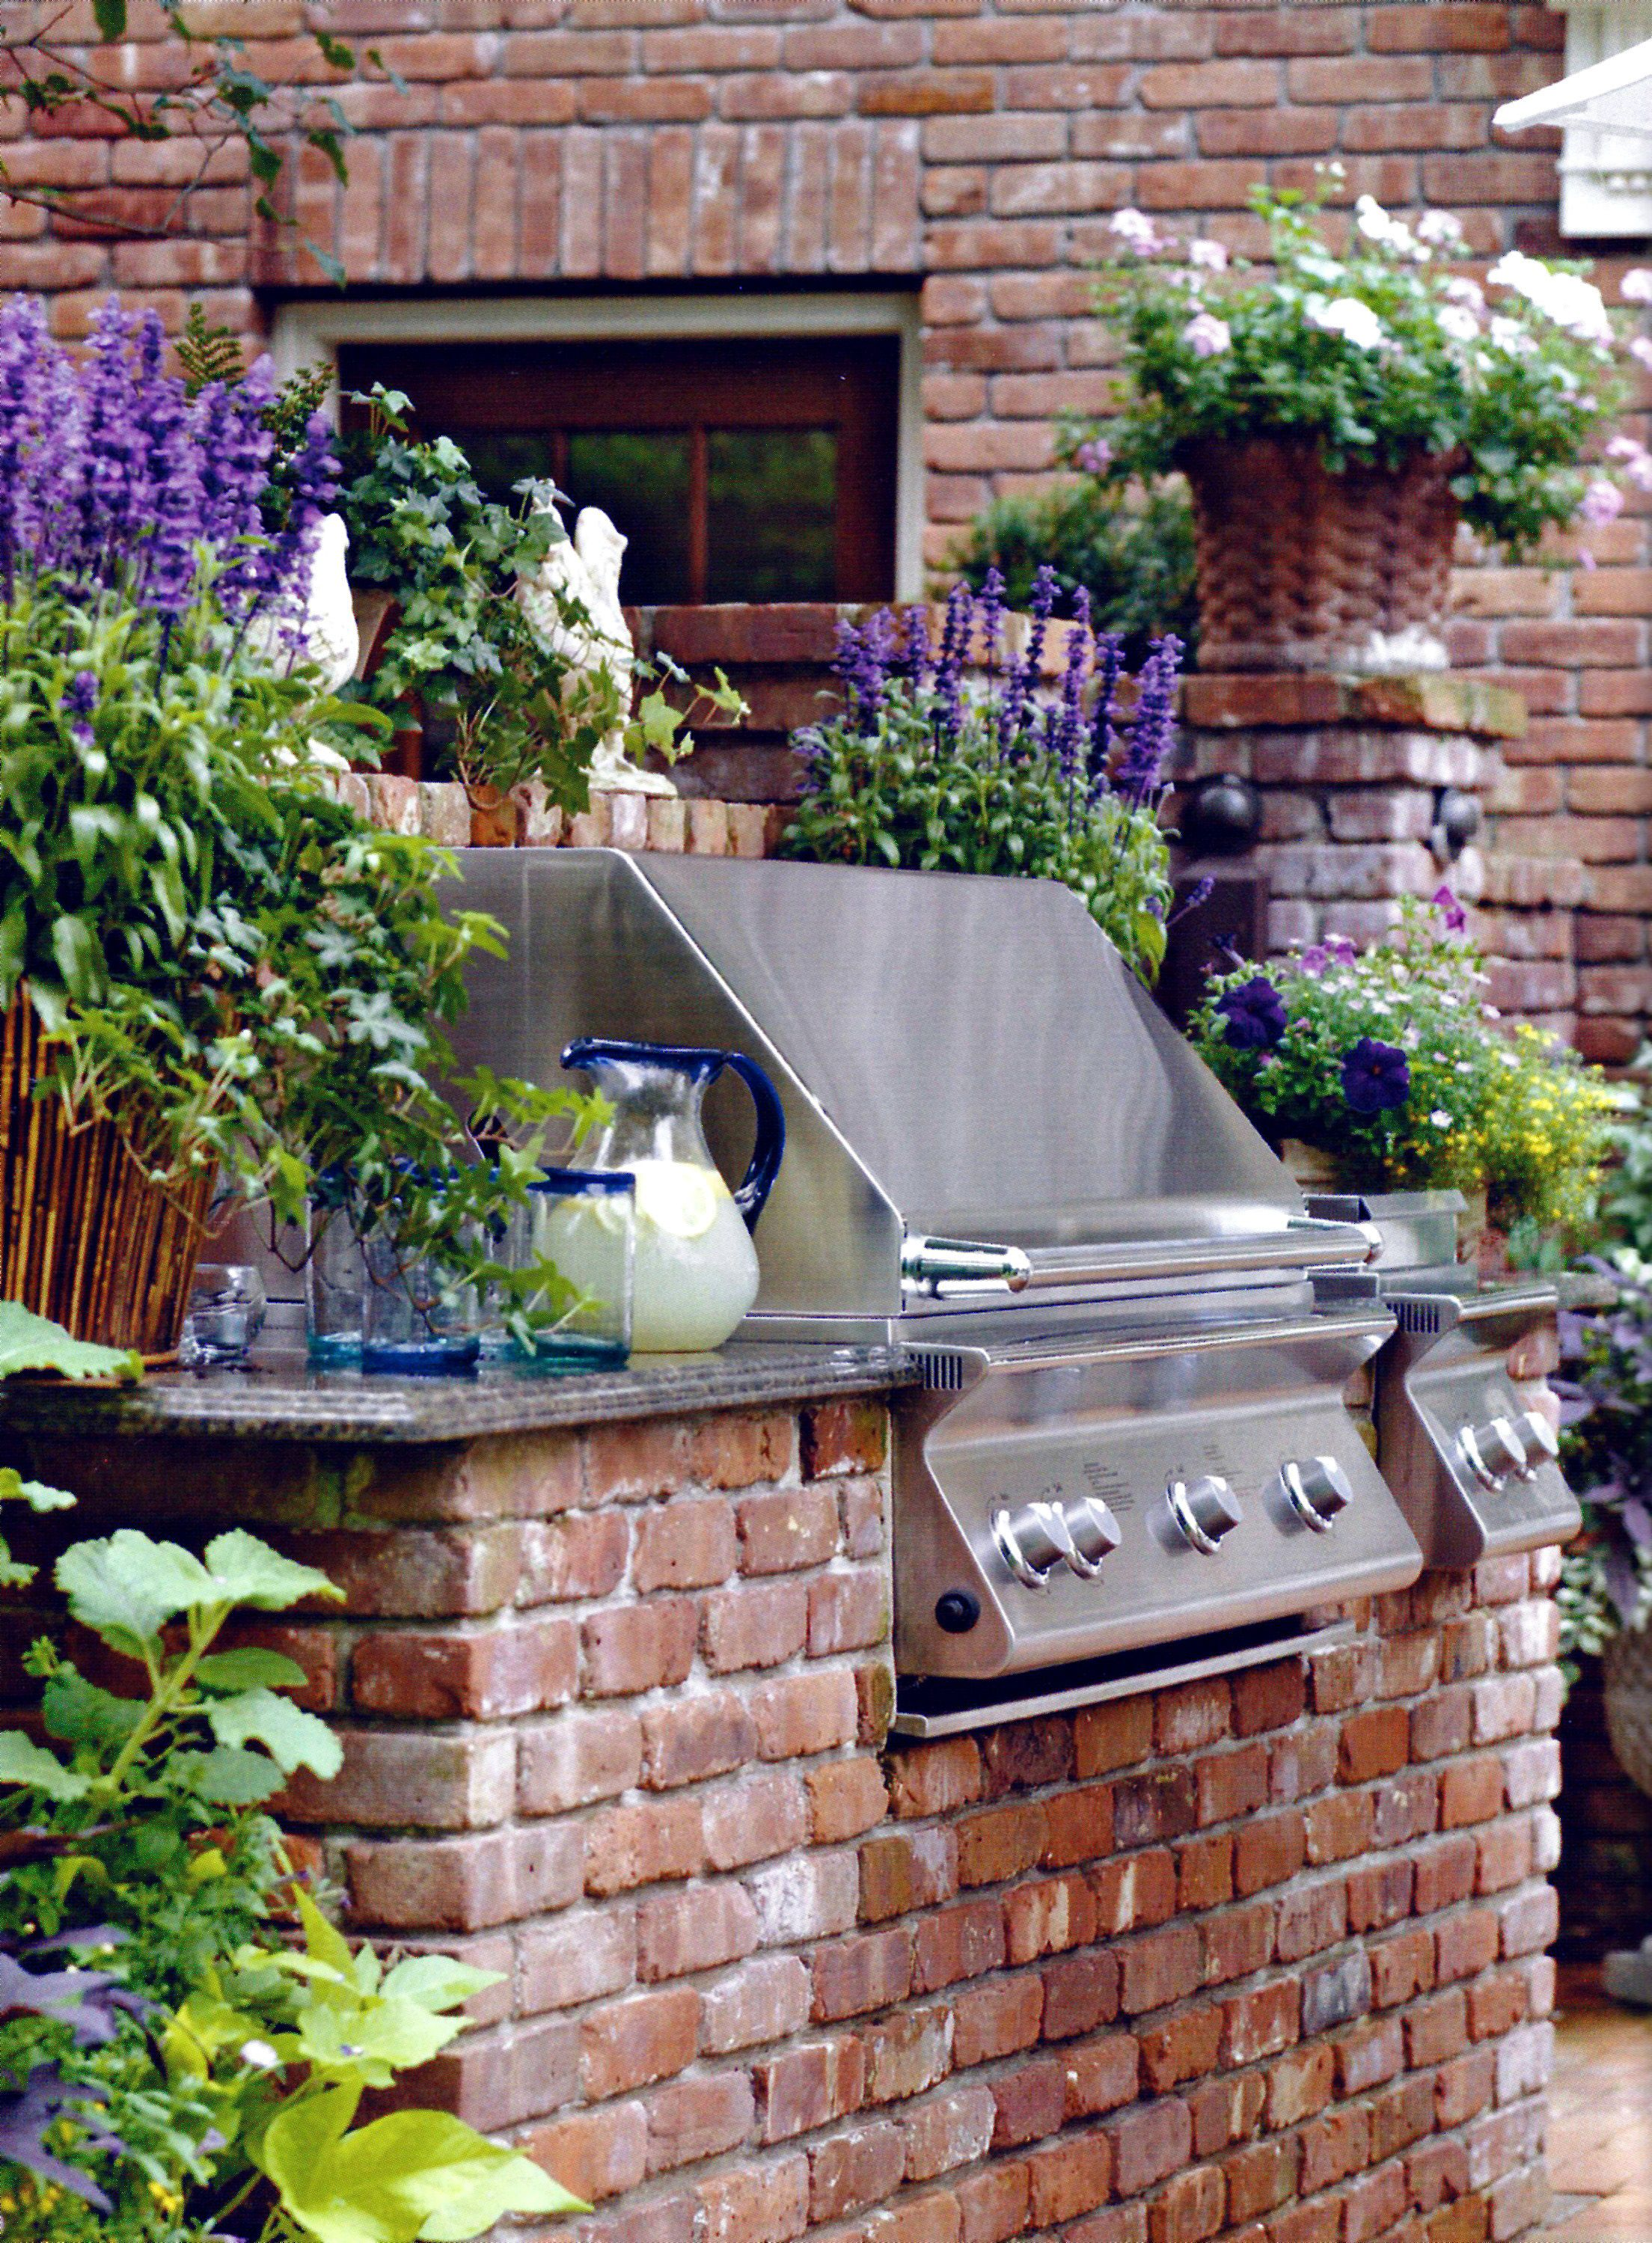 Built in Gas Barbeque was constructed to match the house and blend